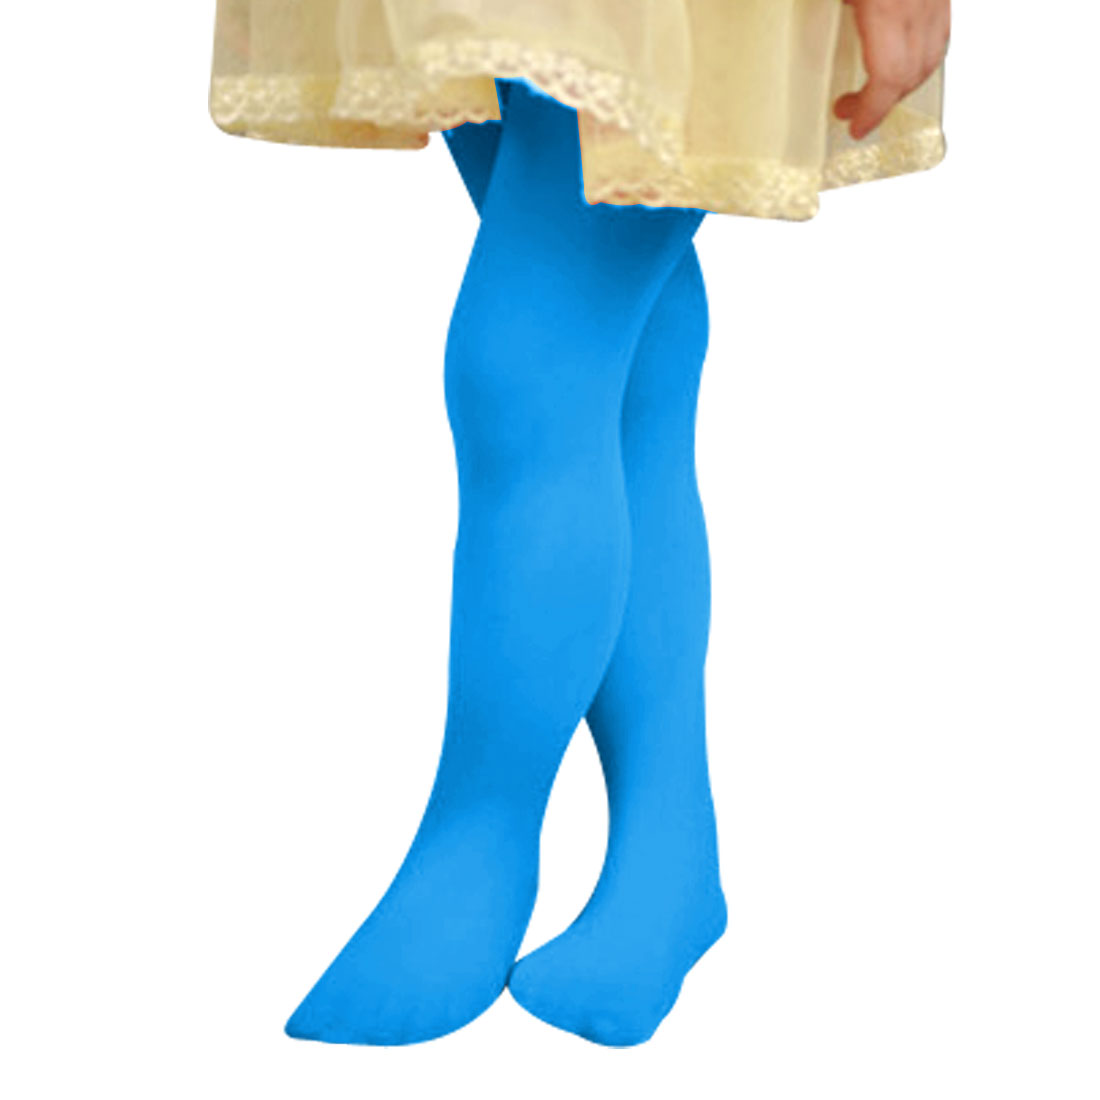 7-11T Girls Kids Elastic Opaque Footed Pantyhose Hosiery Tights Collant Blue L